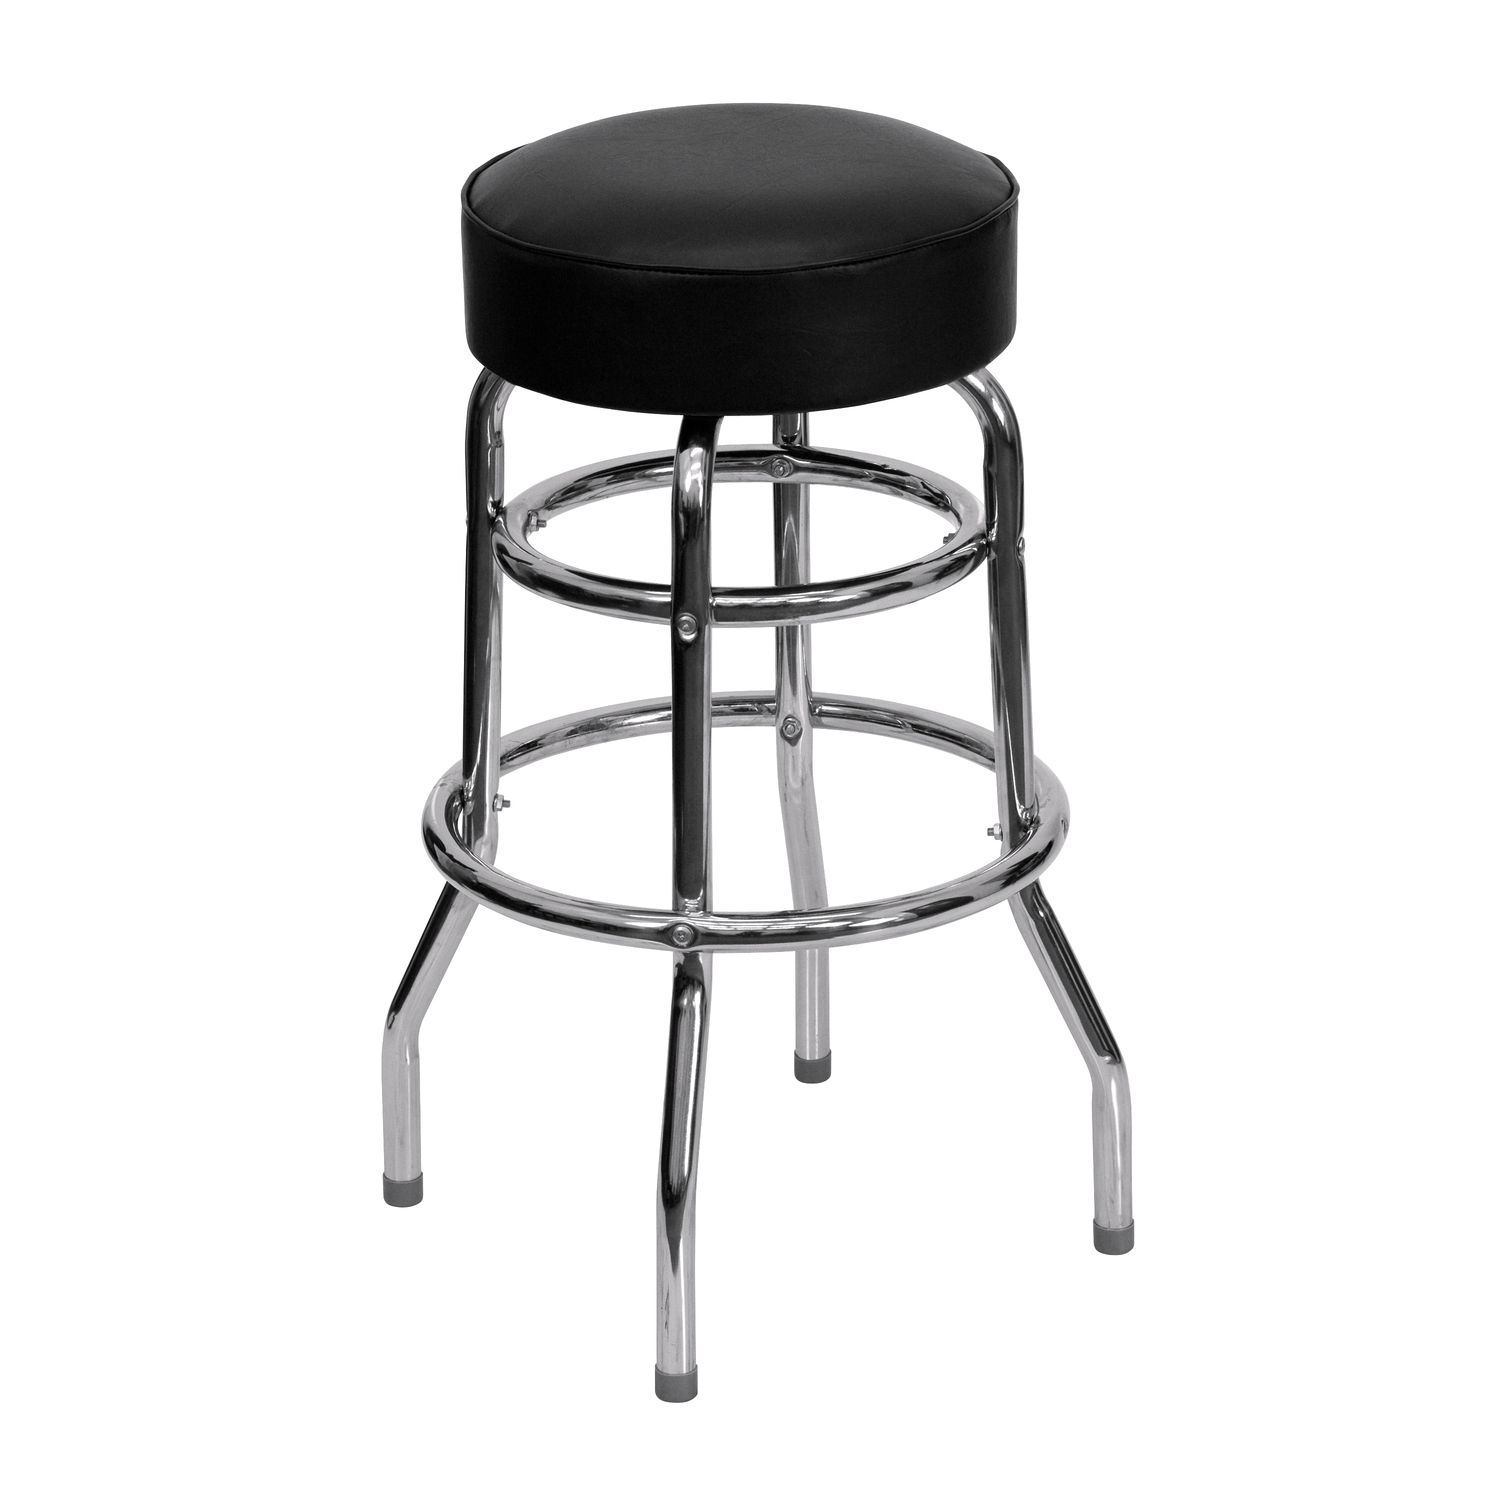 Chrome Bar Stools ~ Flash furniture double ring chrome bar stool with black